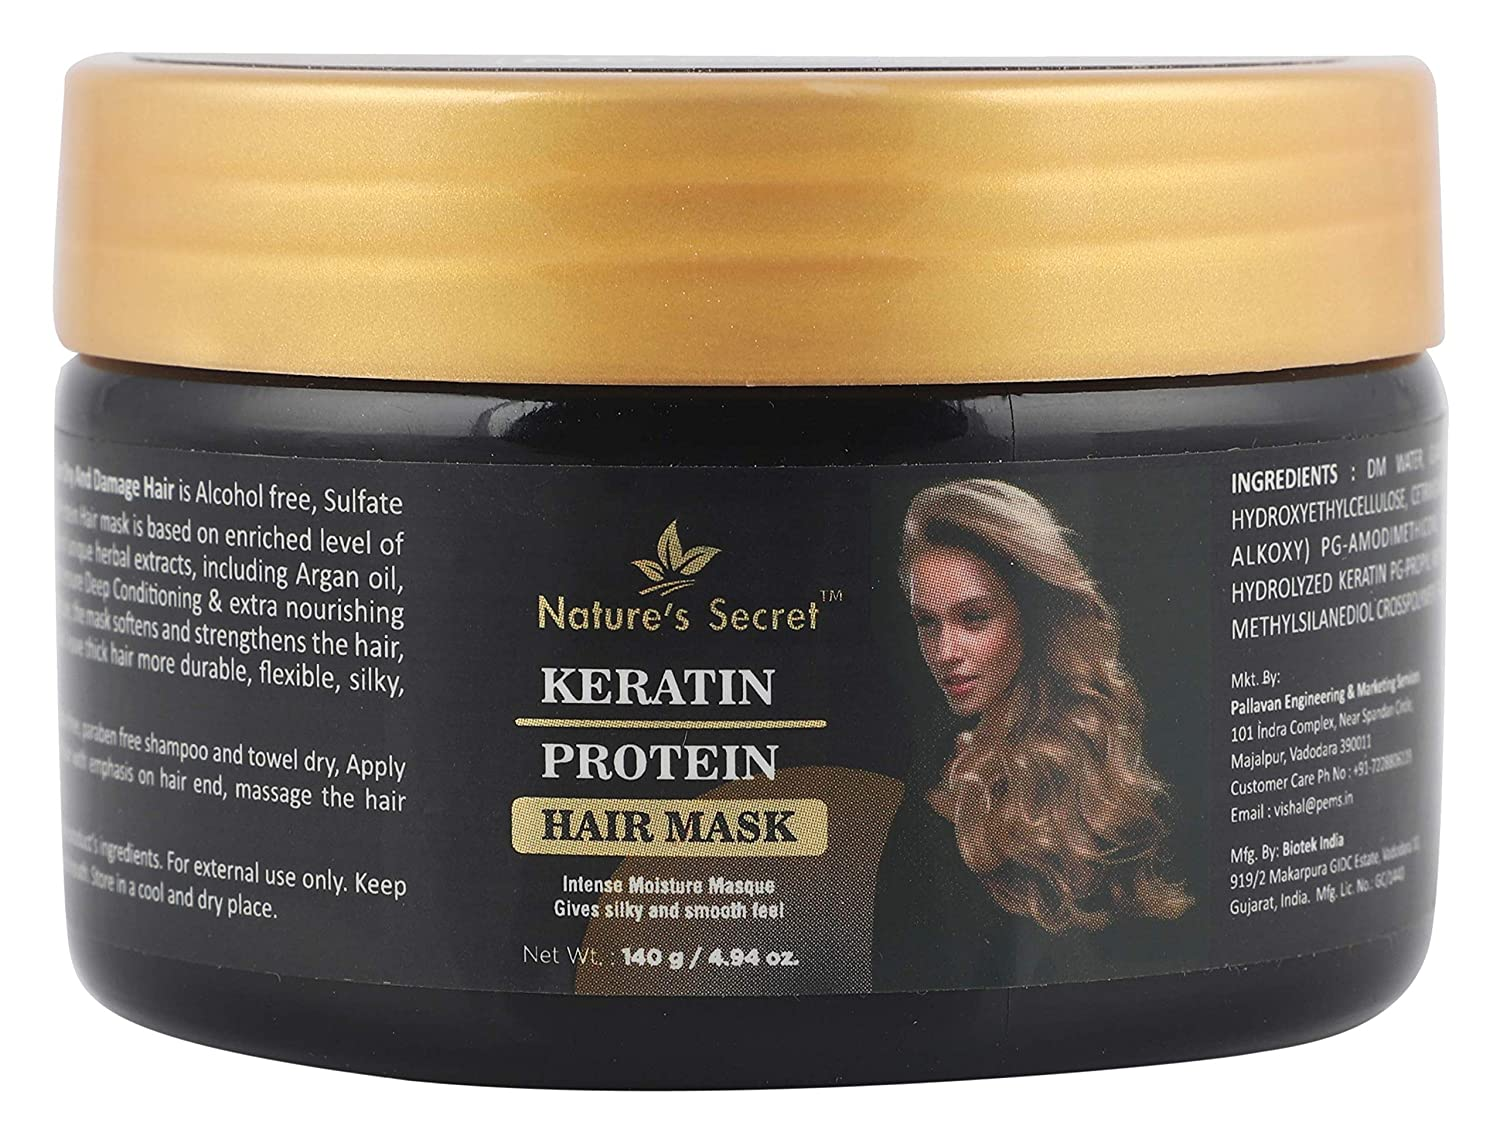 Nature S Secret Keratin Protein Hair Mask For Hair No Parabens And No Mineral Oil Keratin Protein White 140 G Amazon In Beauty